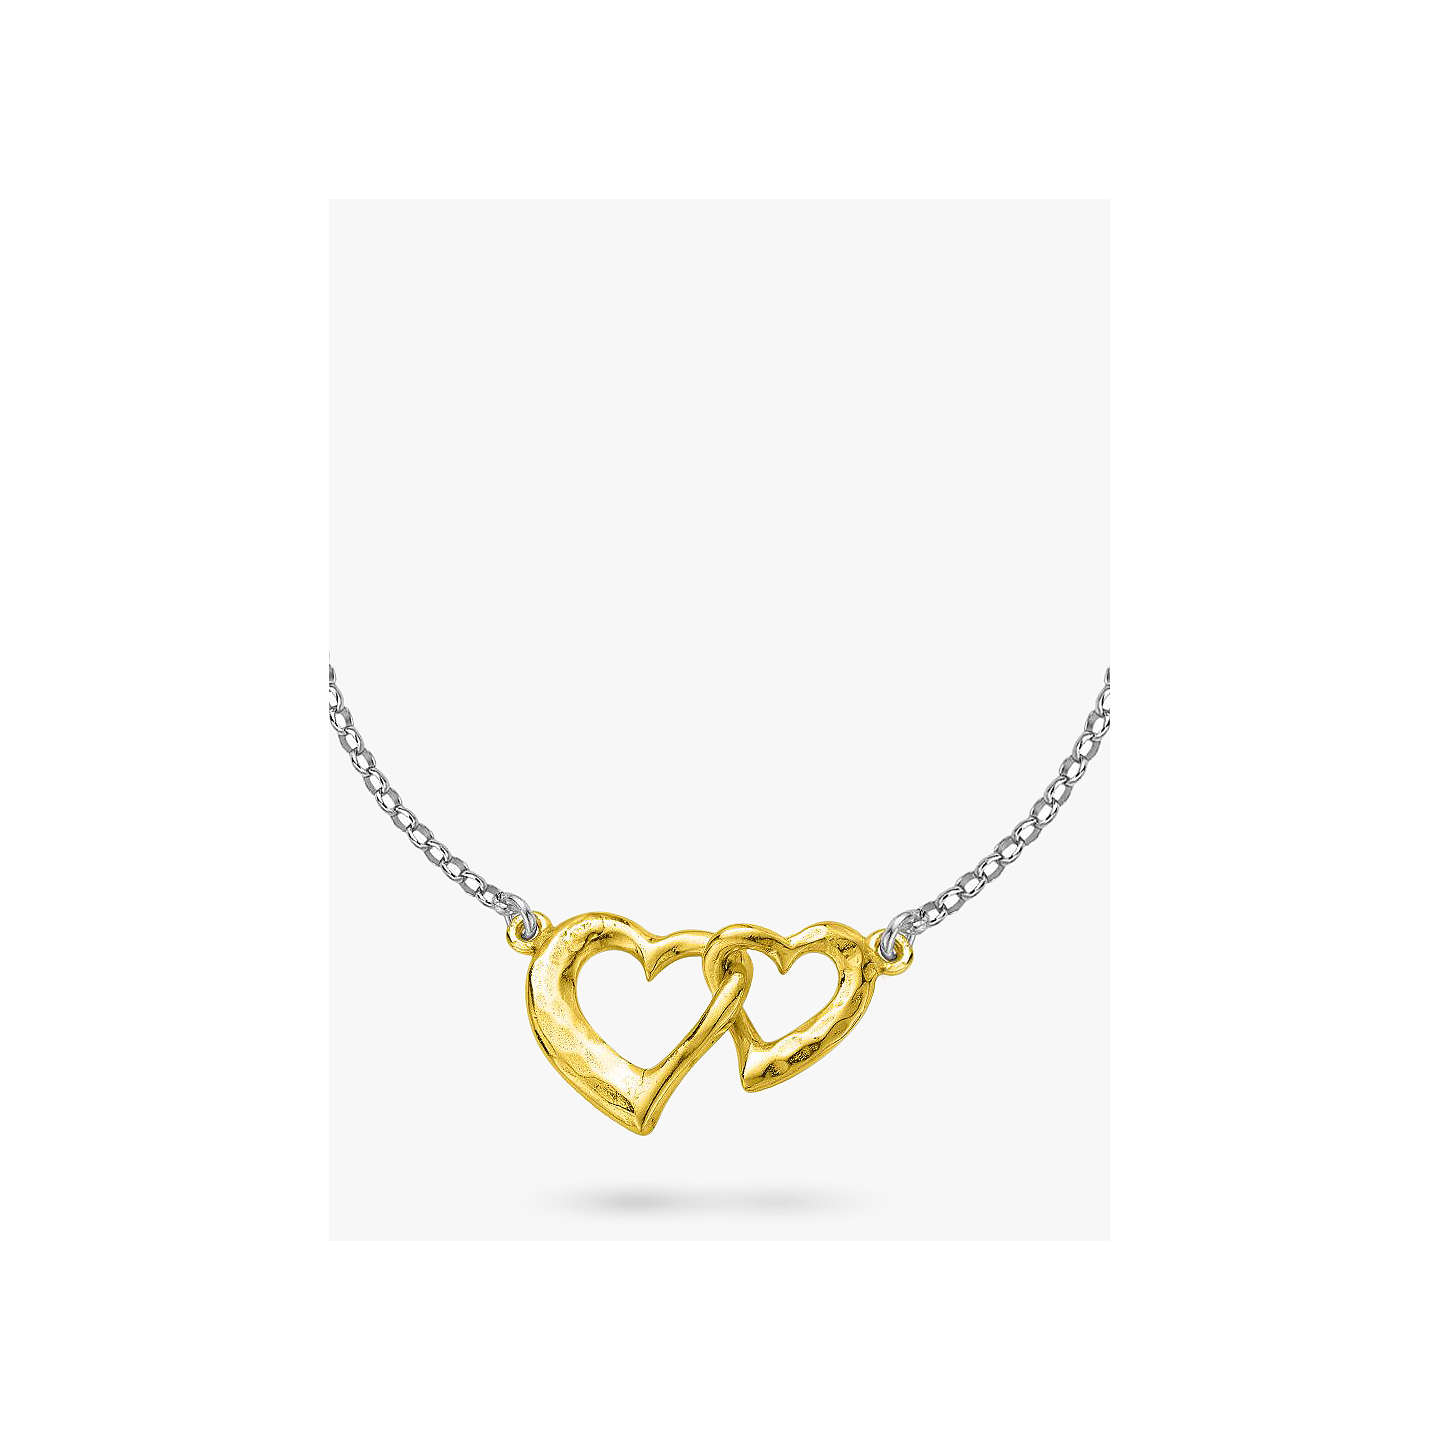 Dower hall sterling silver entwined hearts pendant necklace at buydower hall sterling silver entwined hearts pendant necklace silvergold online at johnlewis mozeypictures Images